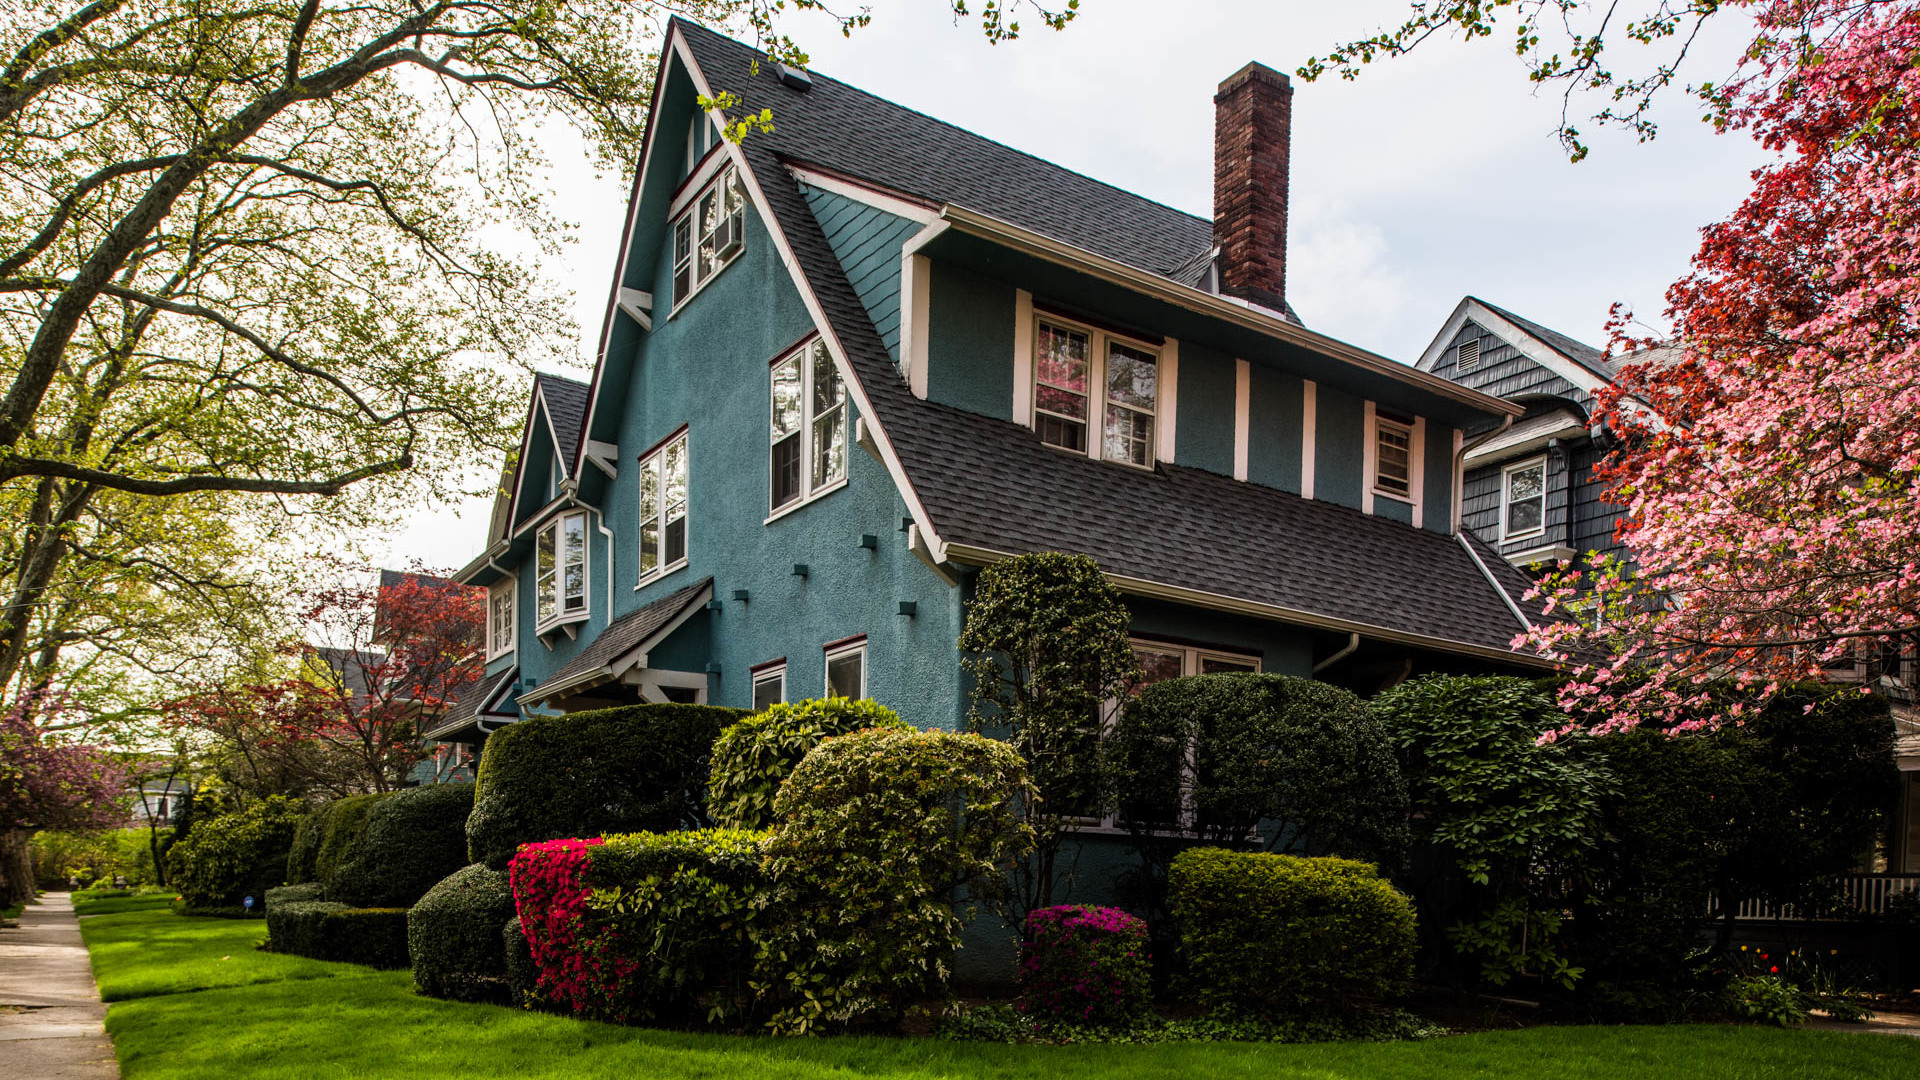 Ditmas park houses spring 49